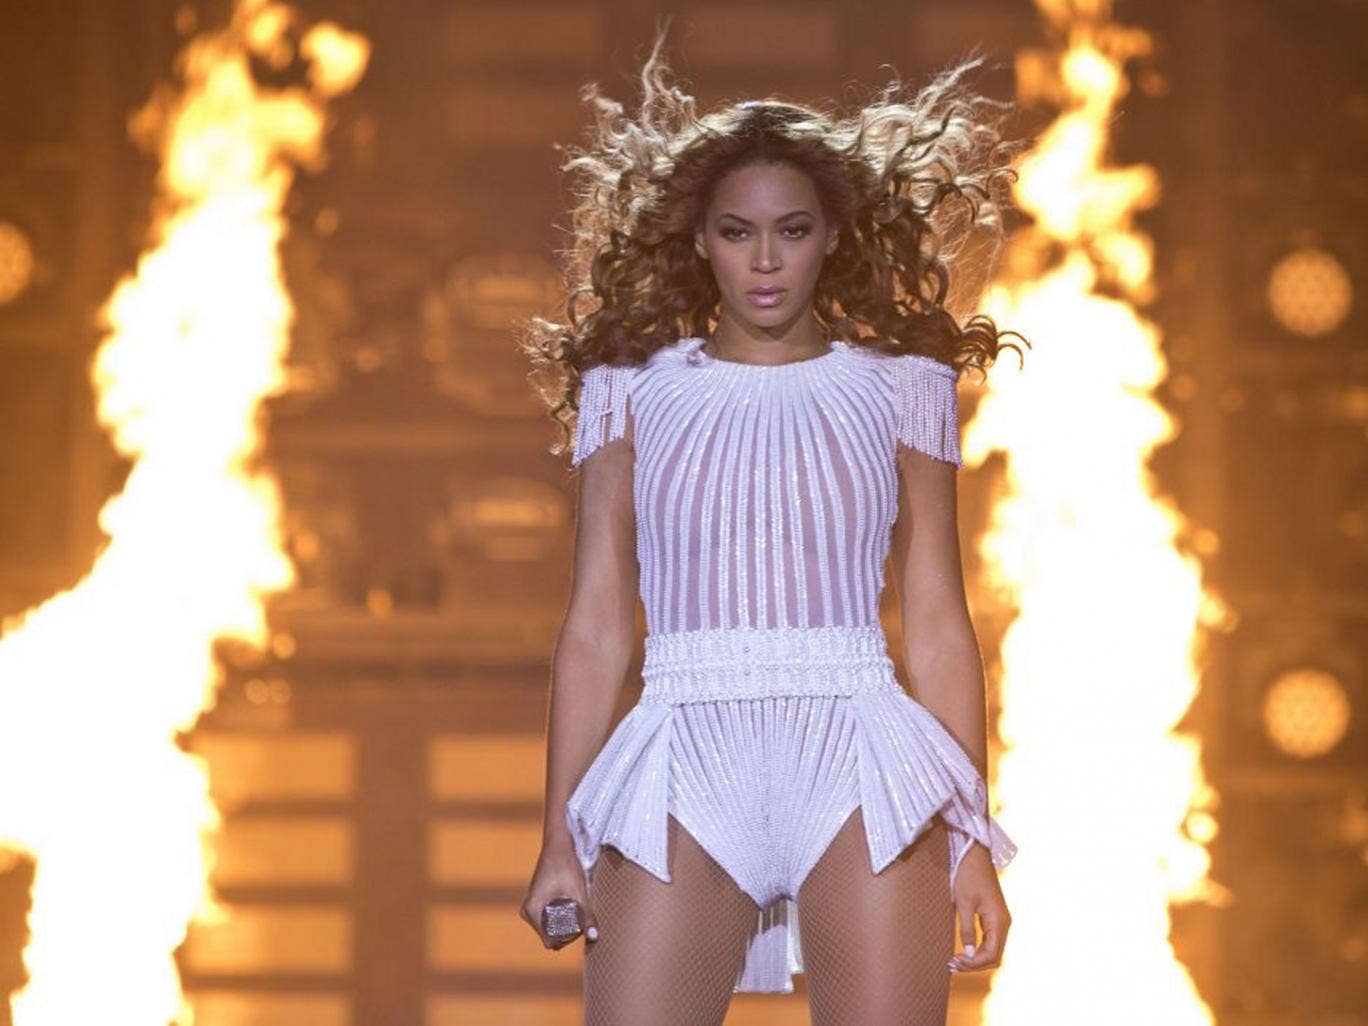 Beyonce has been called insensitive by NASA representatives for using a clip from the 1986 Challenger tragedy in which seven astronauts lost their lives